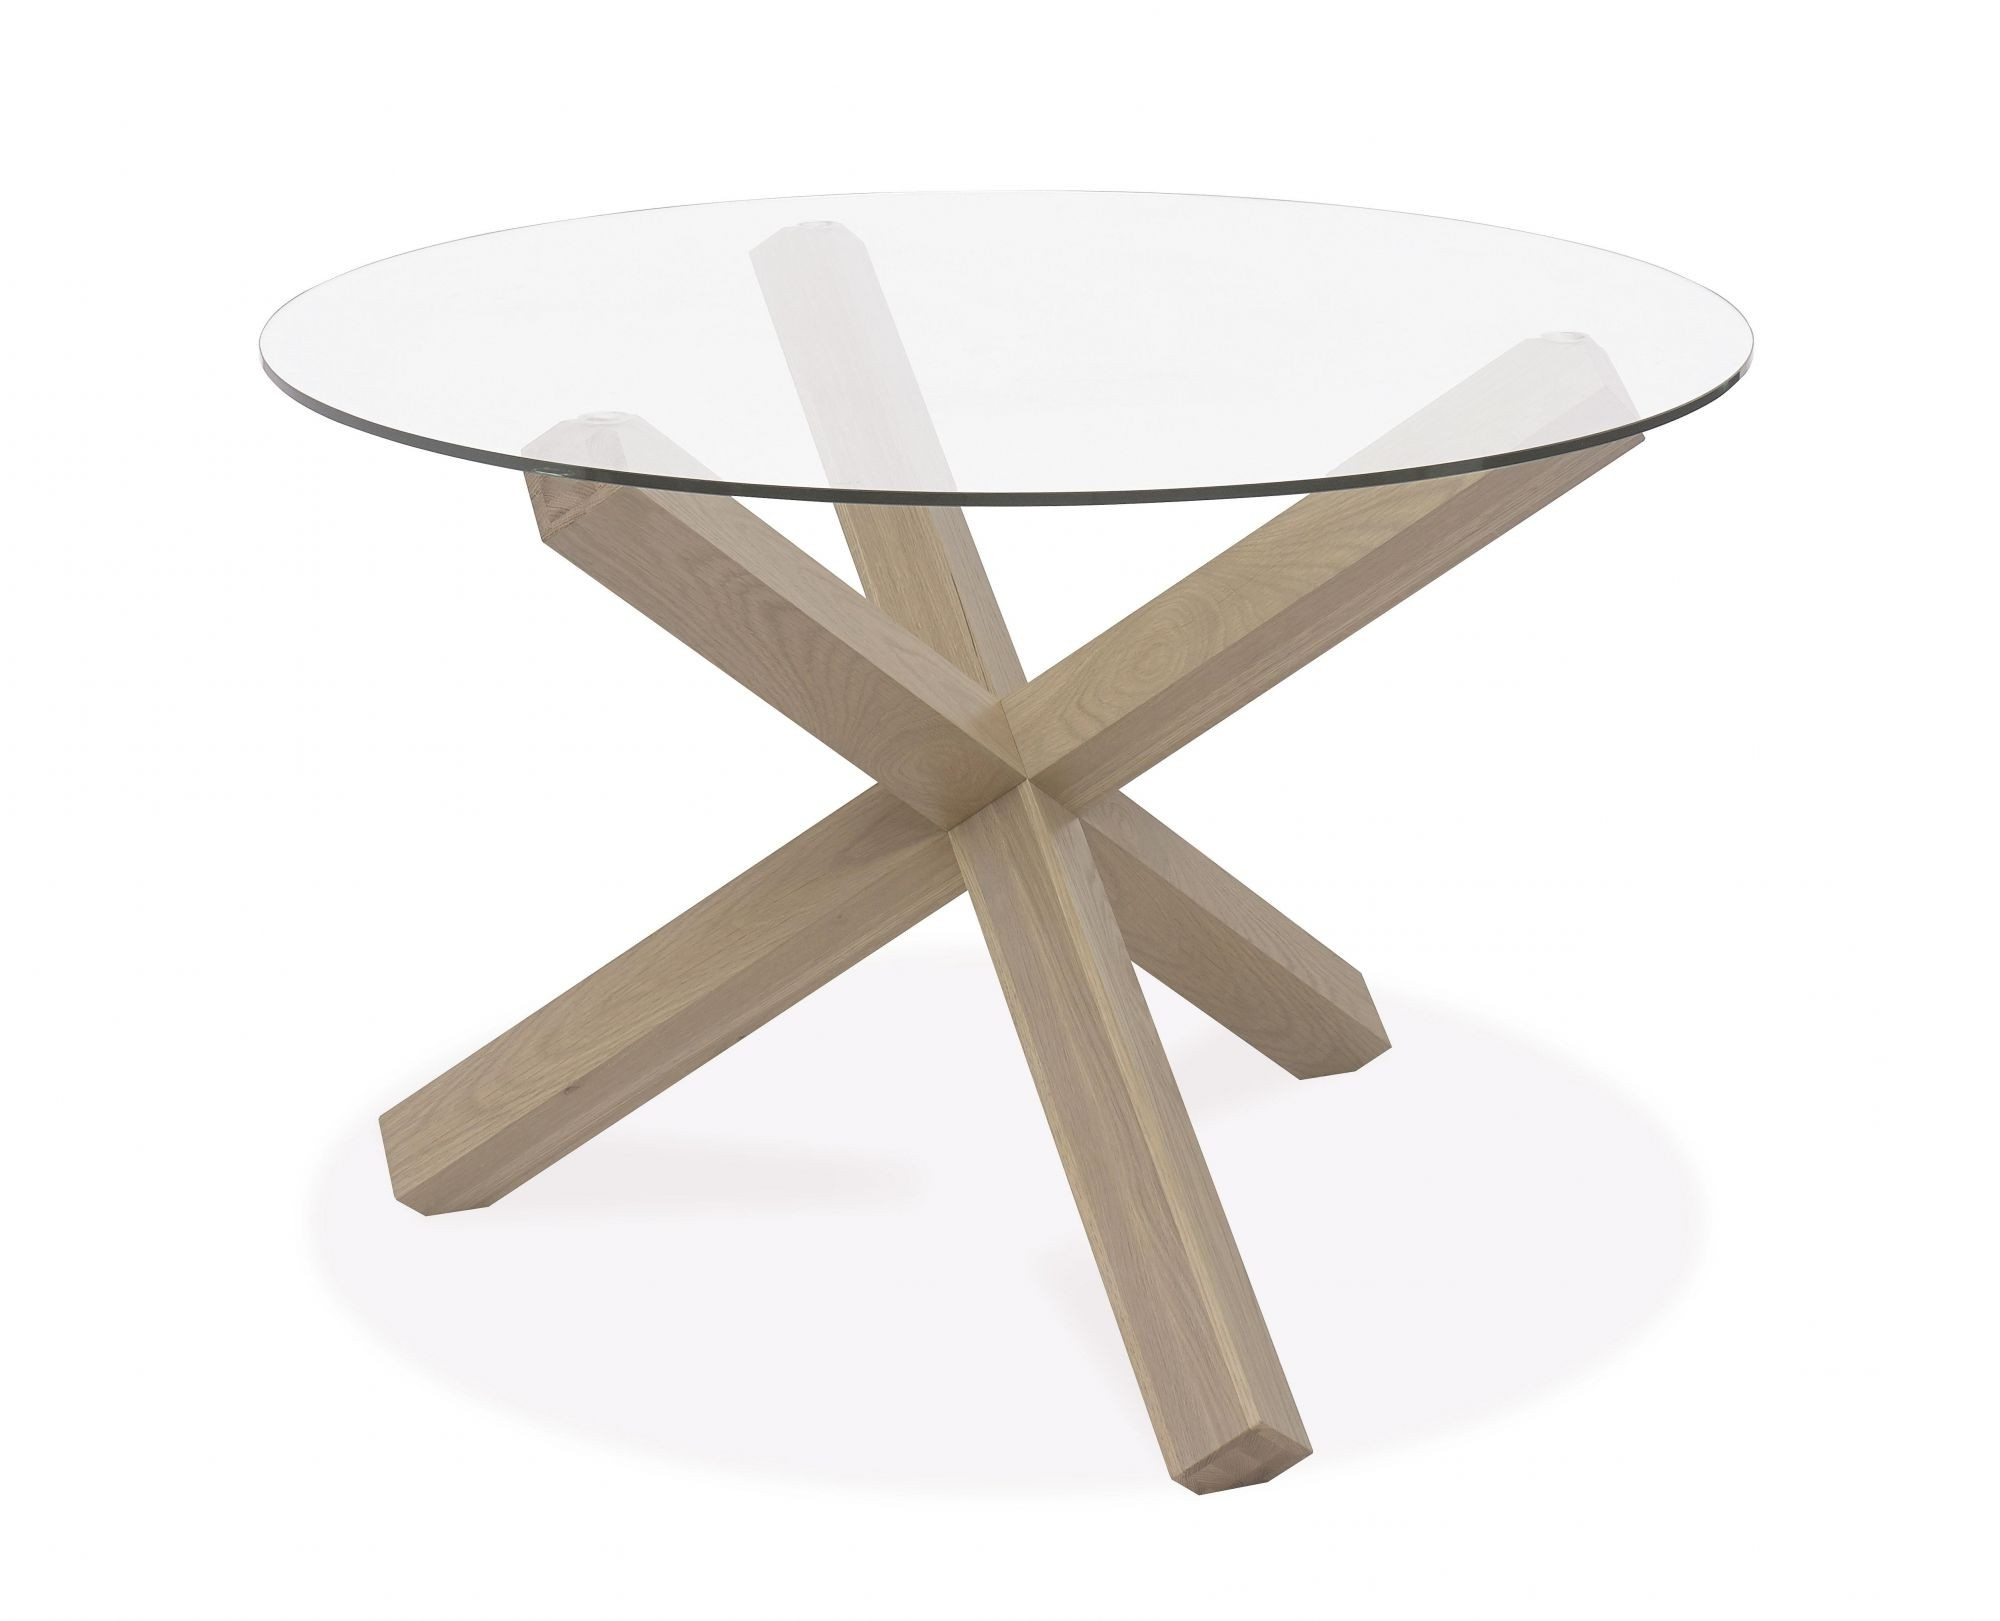 Circular Oak Dining Tables Inside Trendy Kitchen And Dining Tables, Rectangular And Round Kitchen And Dining (View 7 of 25)